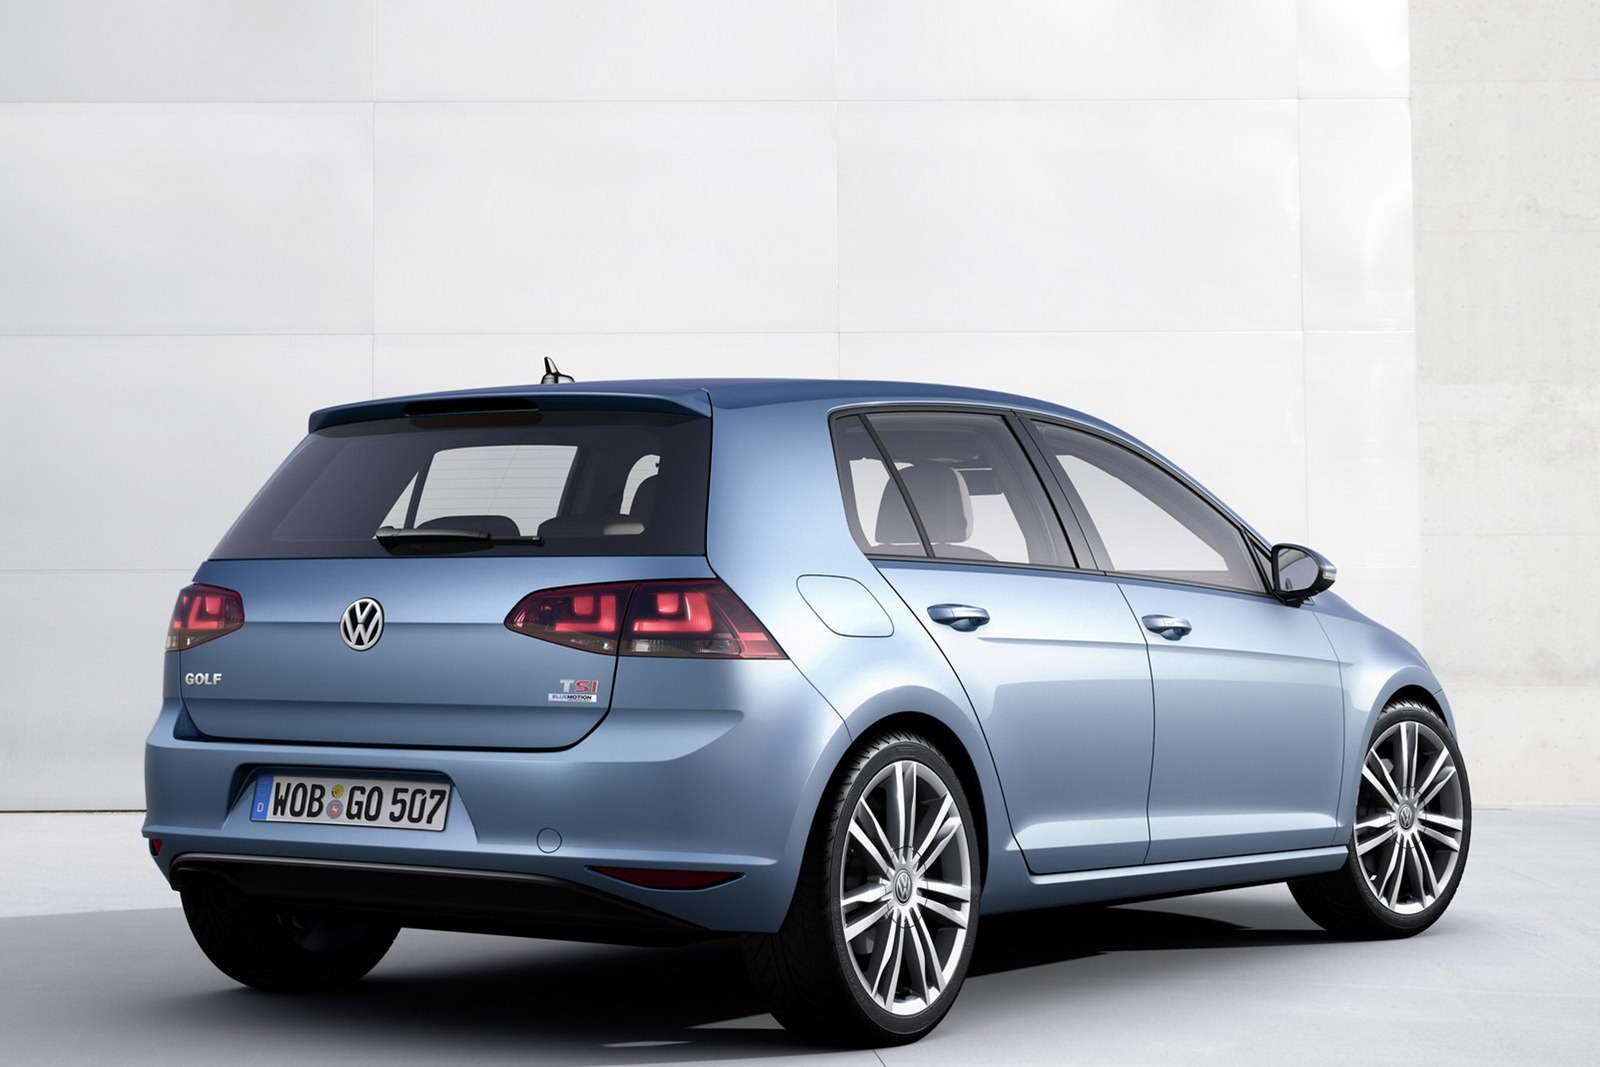 2013 Volkswagen Golf photo - 1